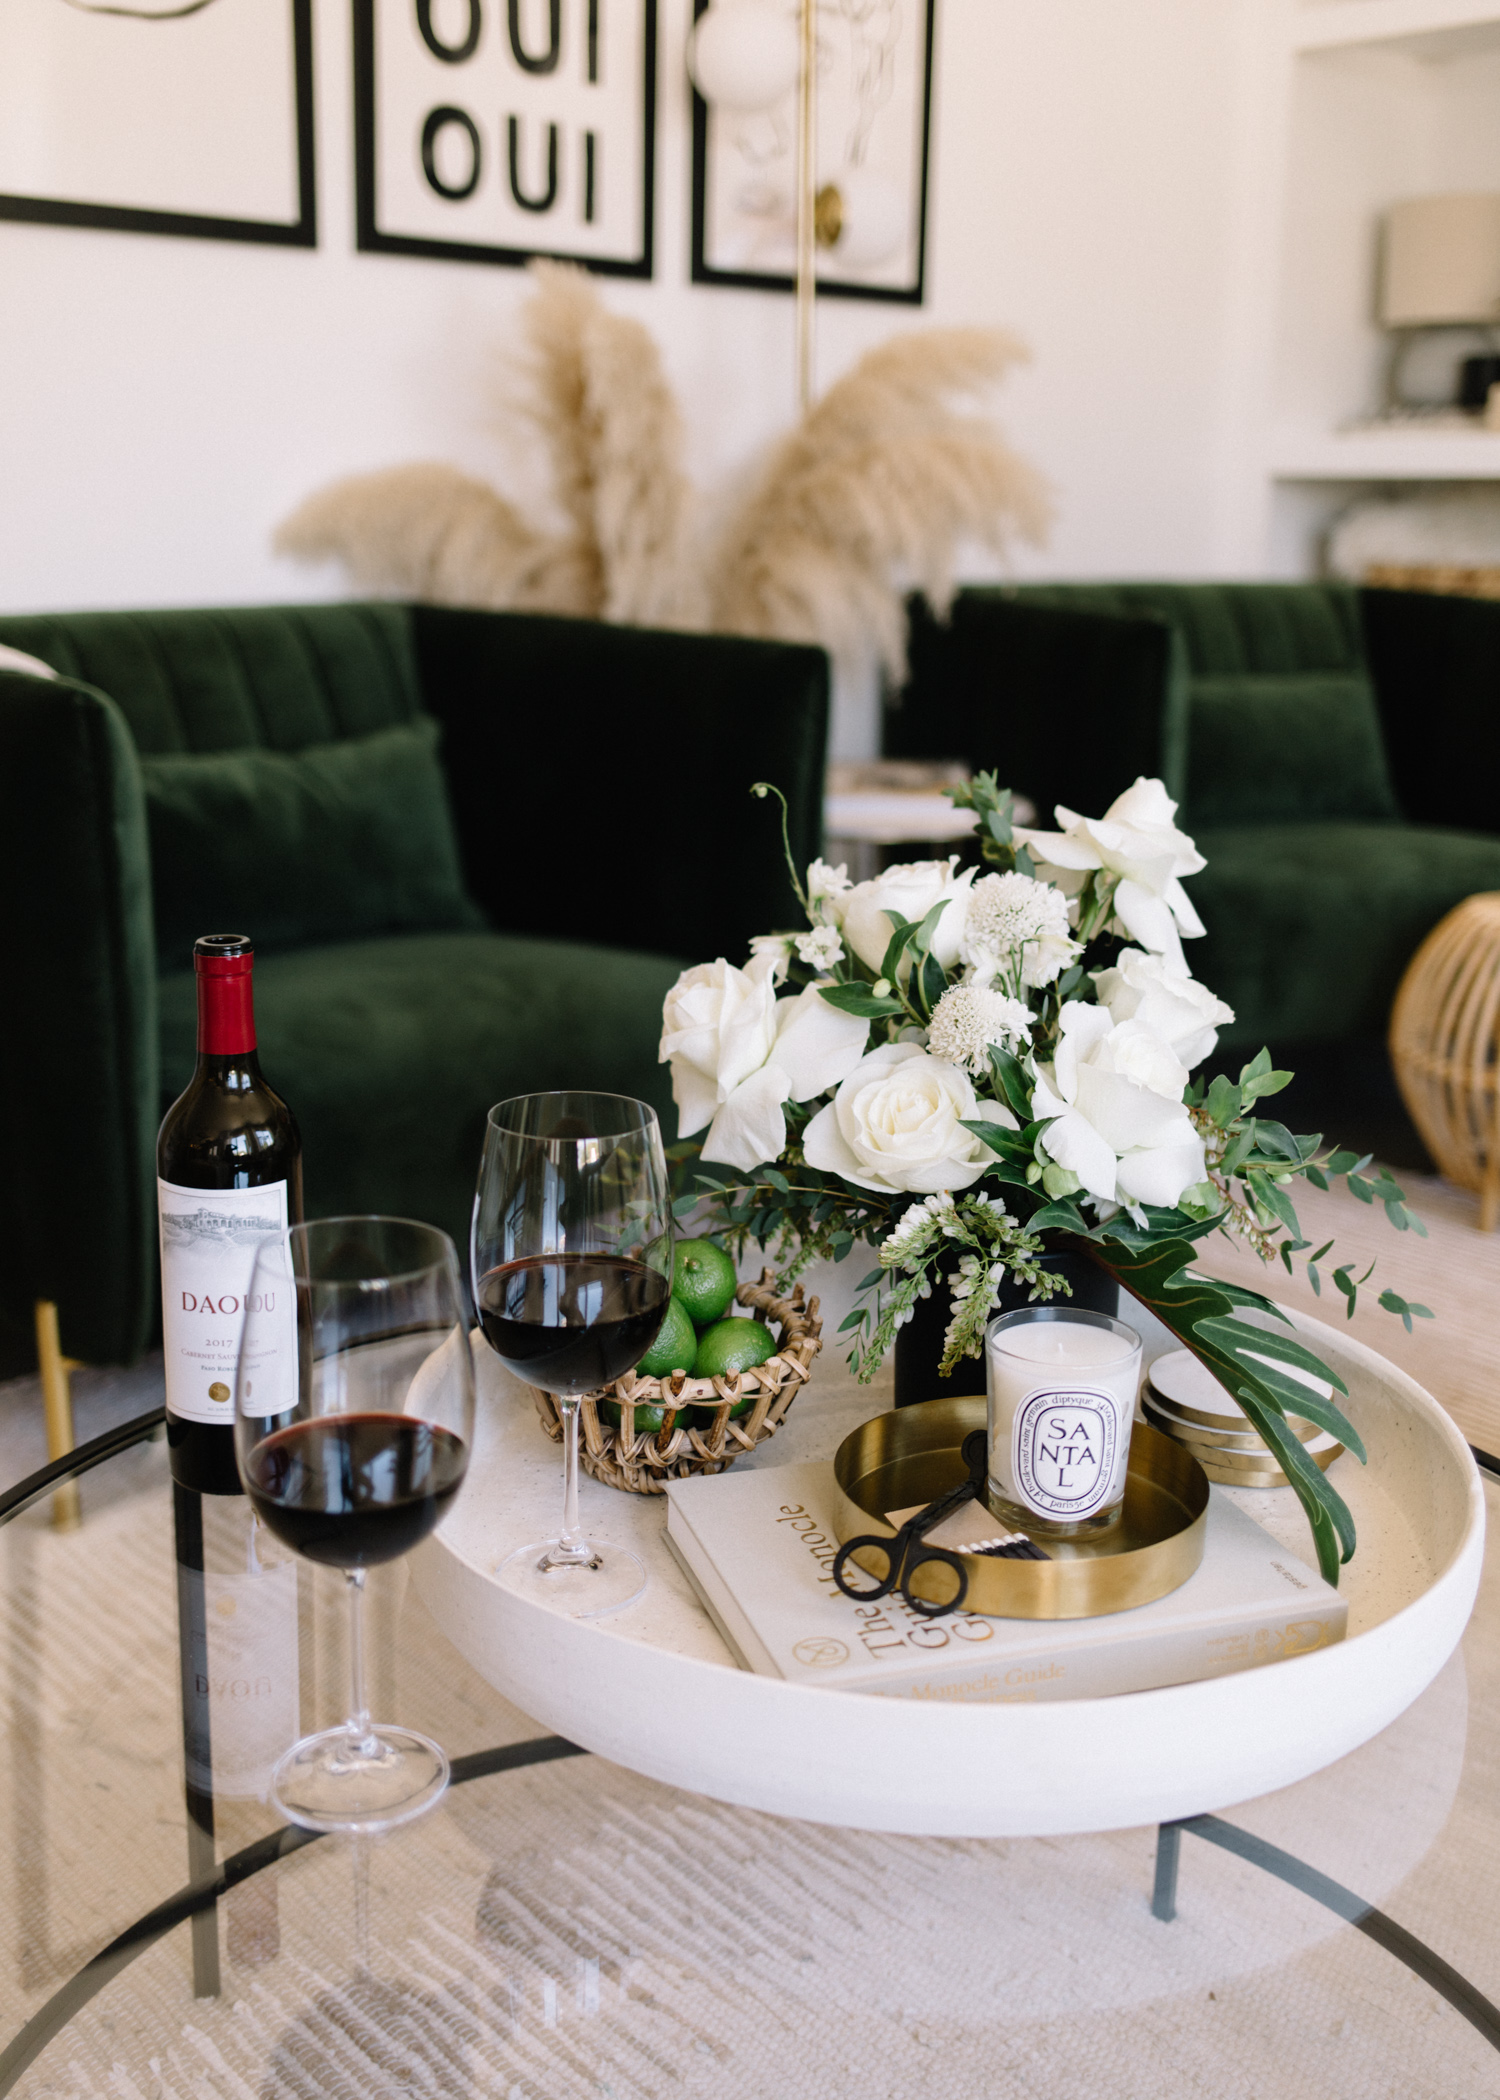 Classic Coffee Table Styling - A Fabulous Fete